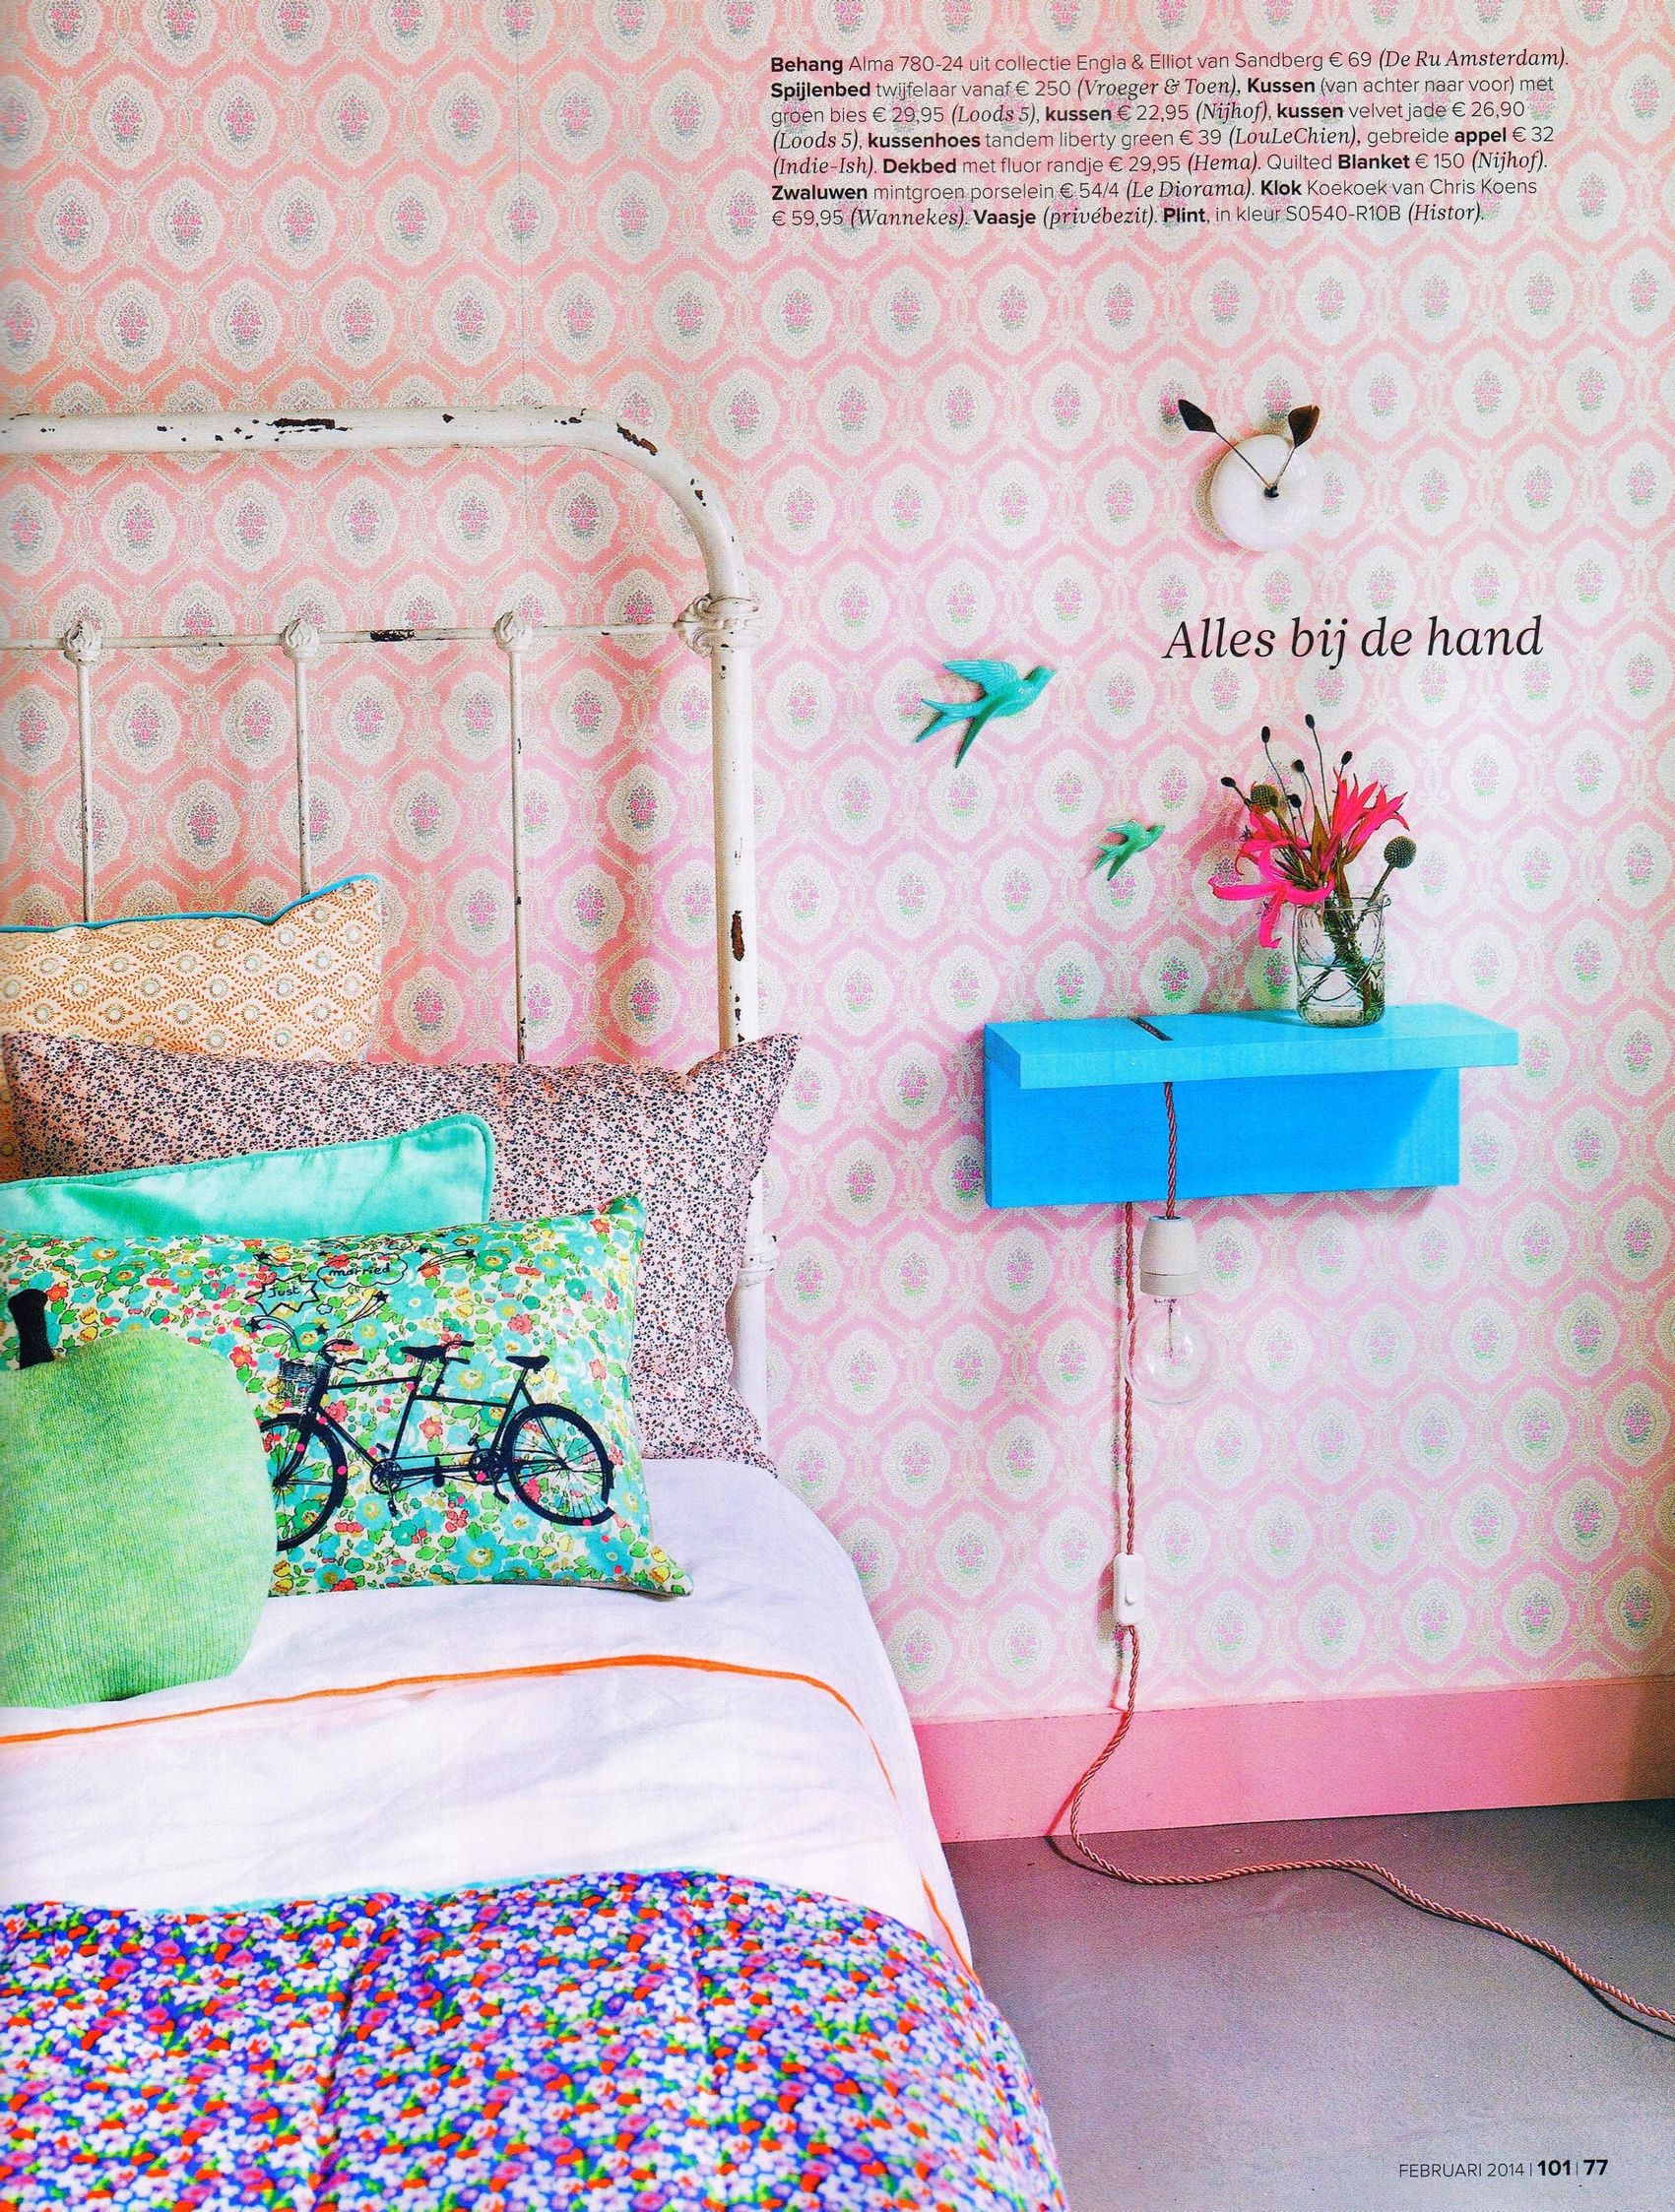 LOVE everything about this! Sweet pink floral wallpaper